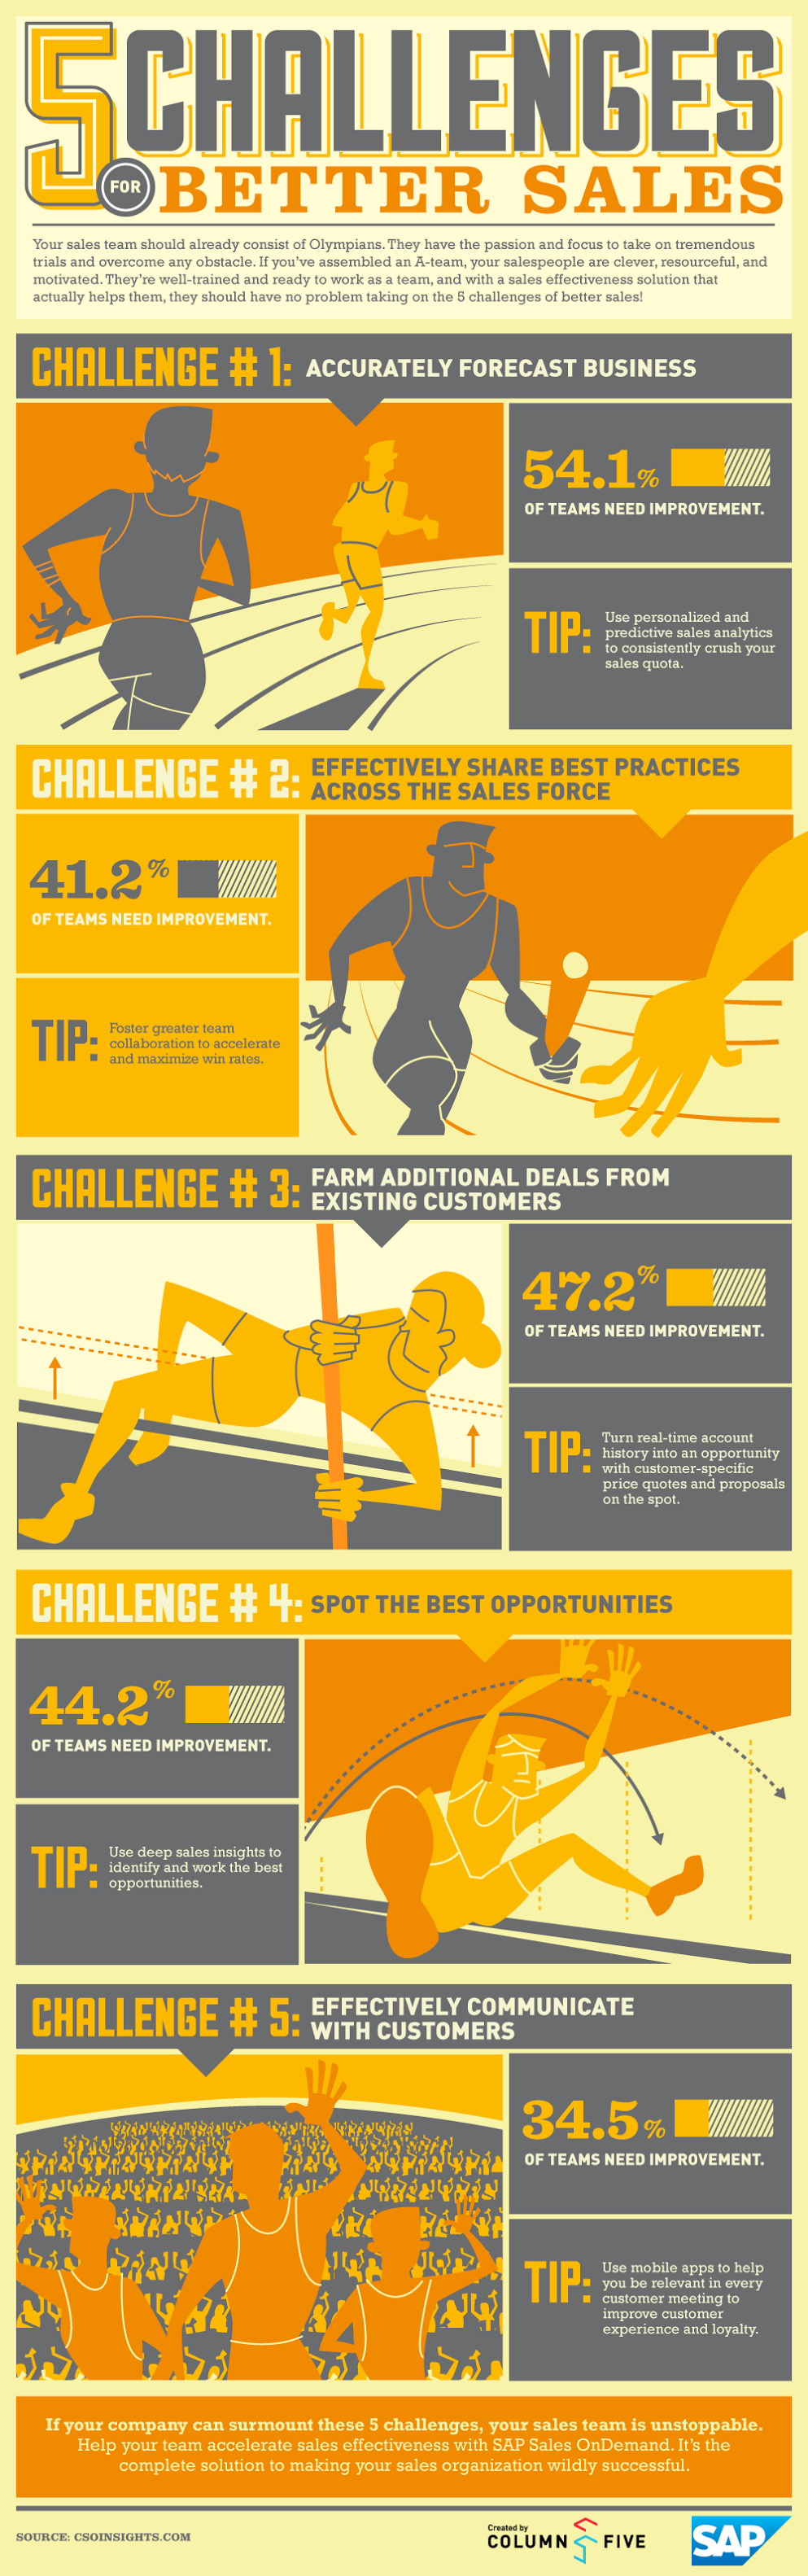 5 Challenges for Better Sales Team [infographic]